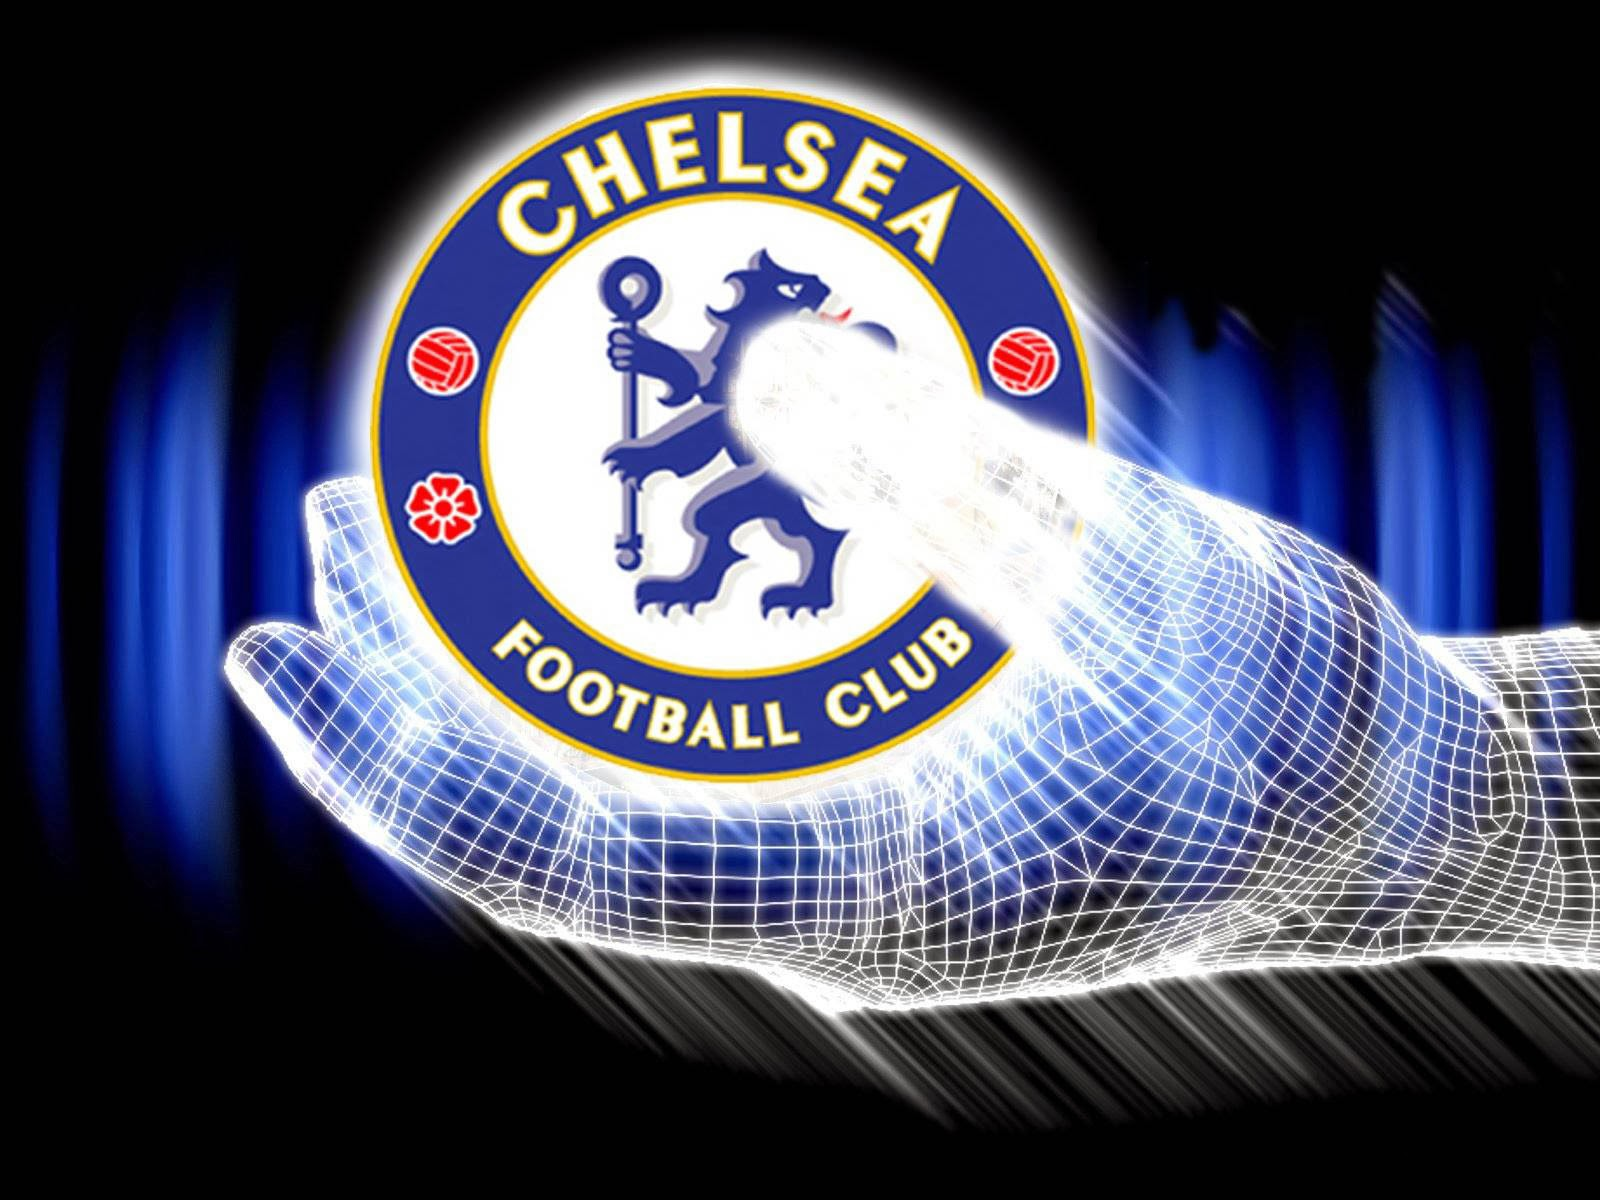 Chelsea Fc Wallpapers   beautiful desktop wallpapers 2014 1600x1200